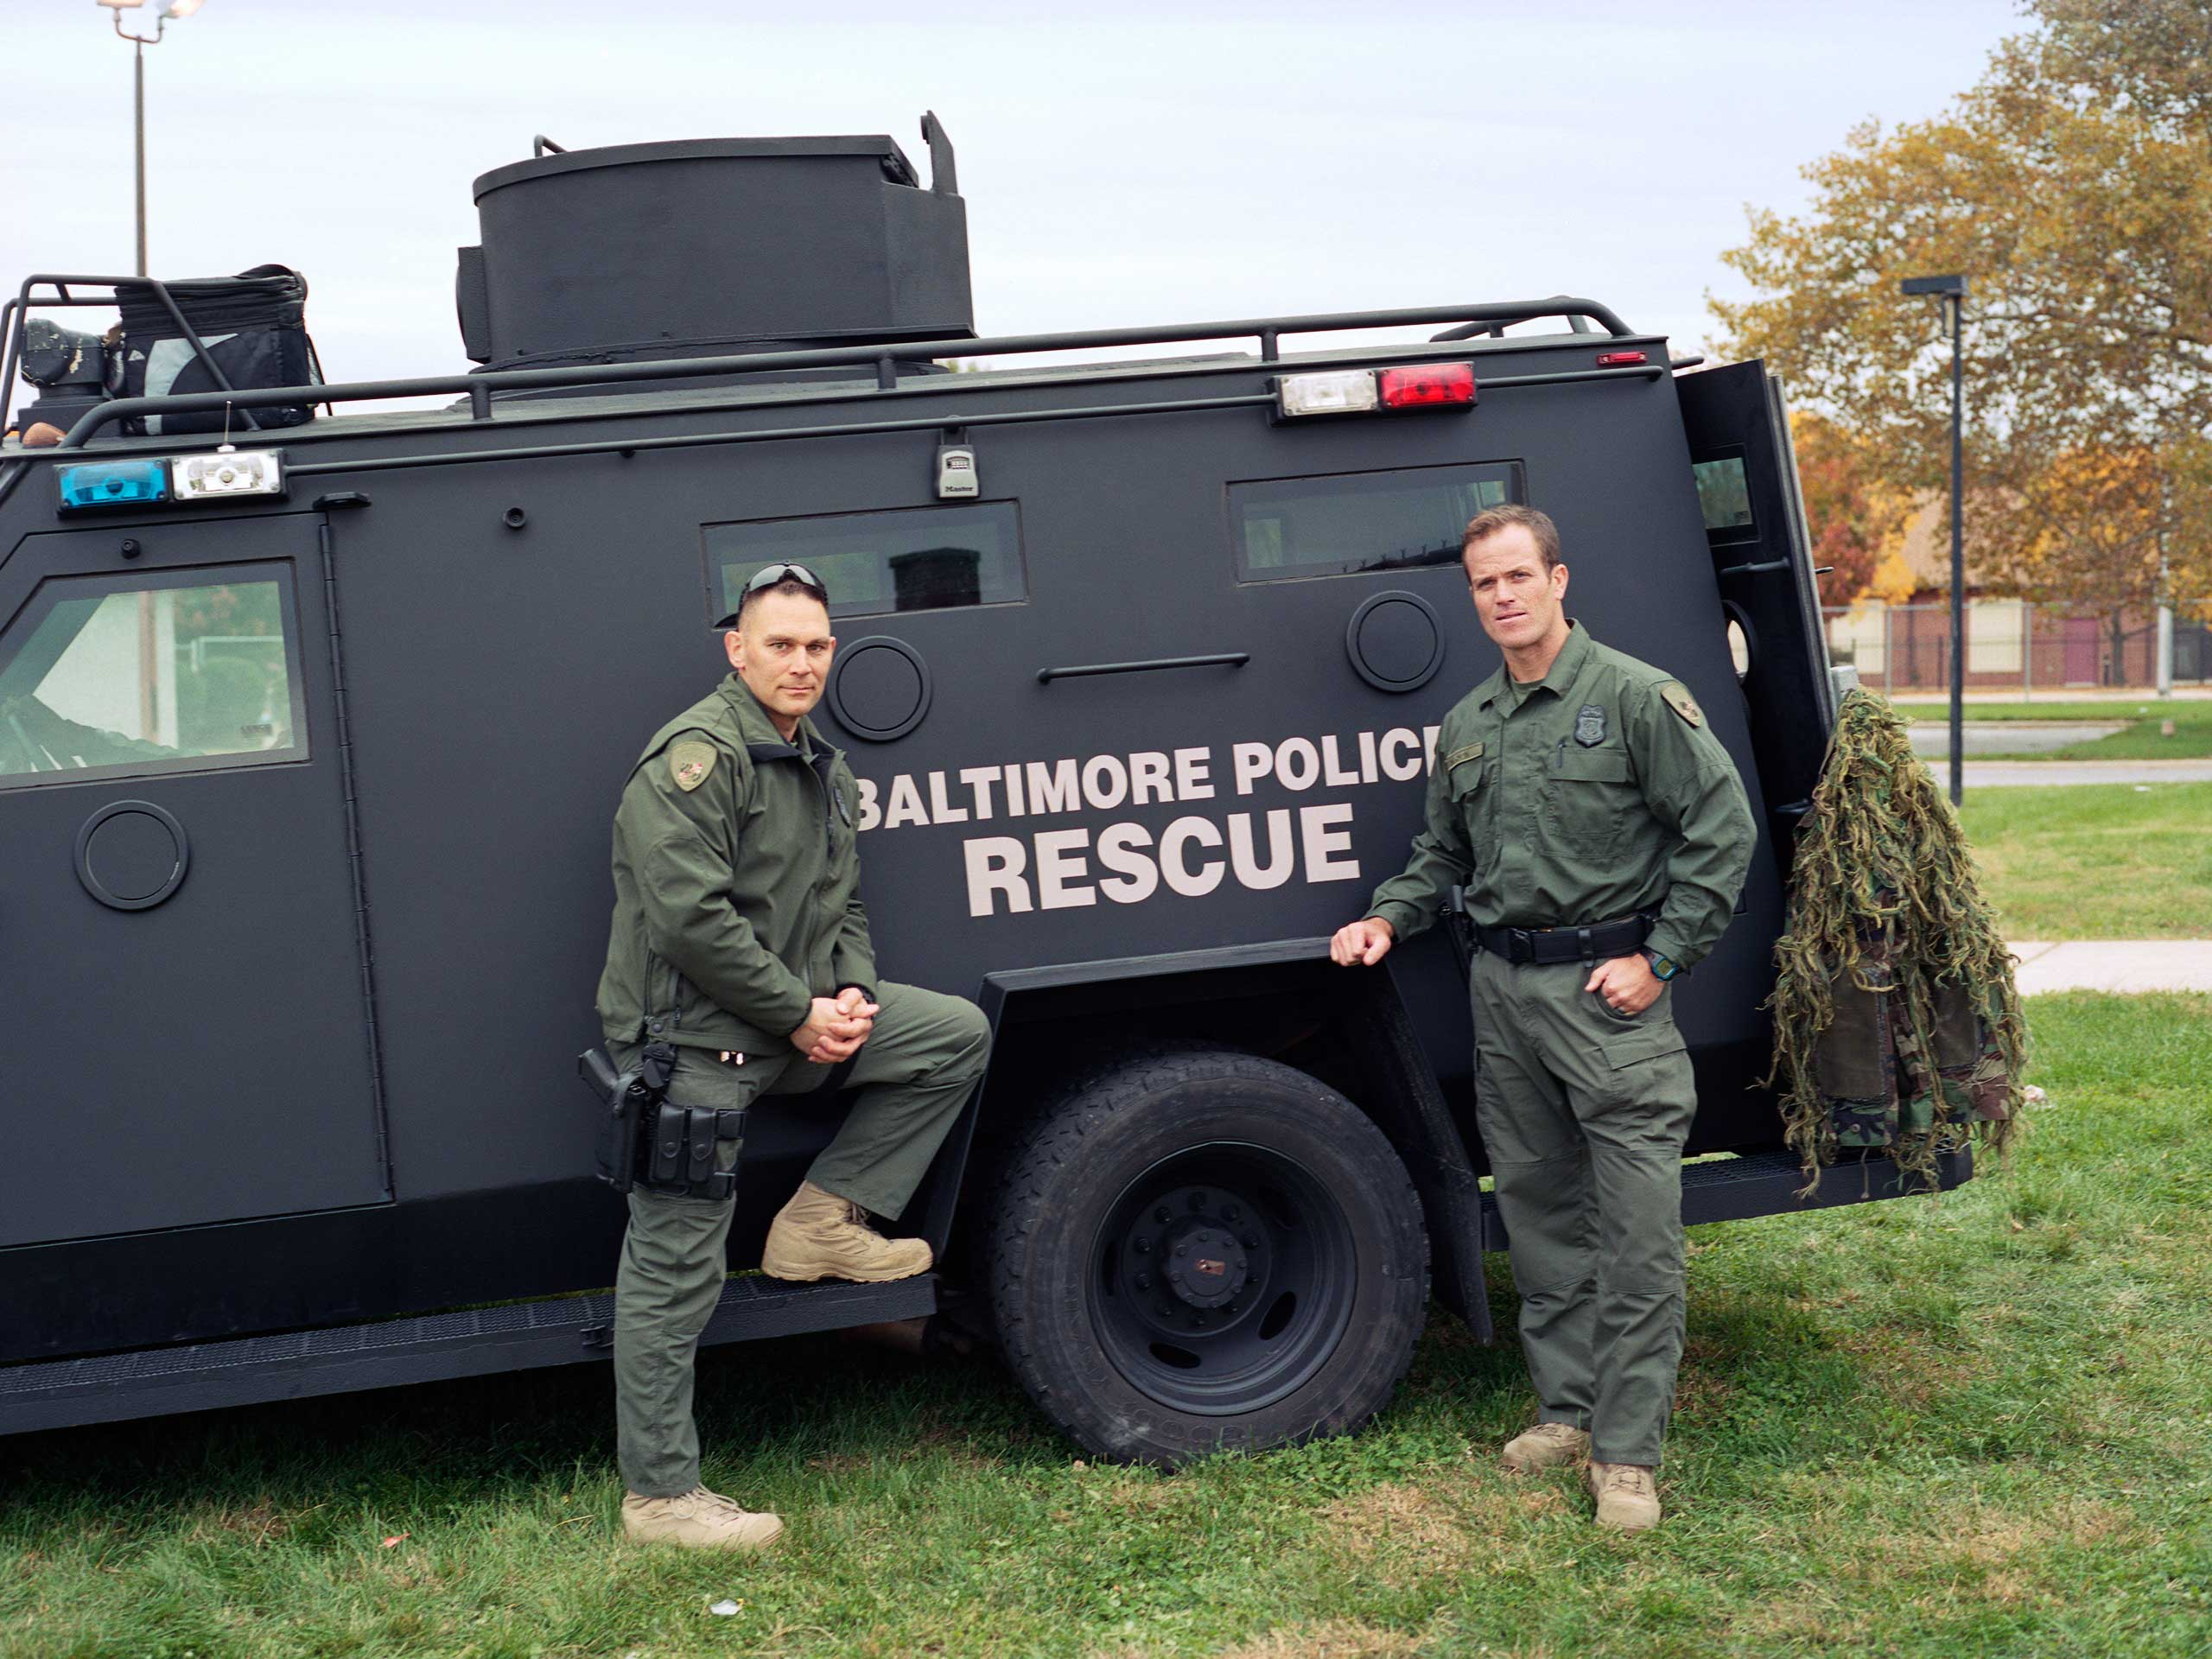 SWAT officers Dustin Schappell and Justin Merson stand beside their SWAT vehicle during a community event in Sandtown. The Baltimore Police SWAT team responds to 200 to 300 calls a year.